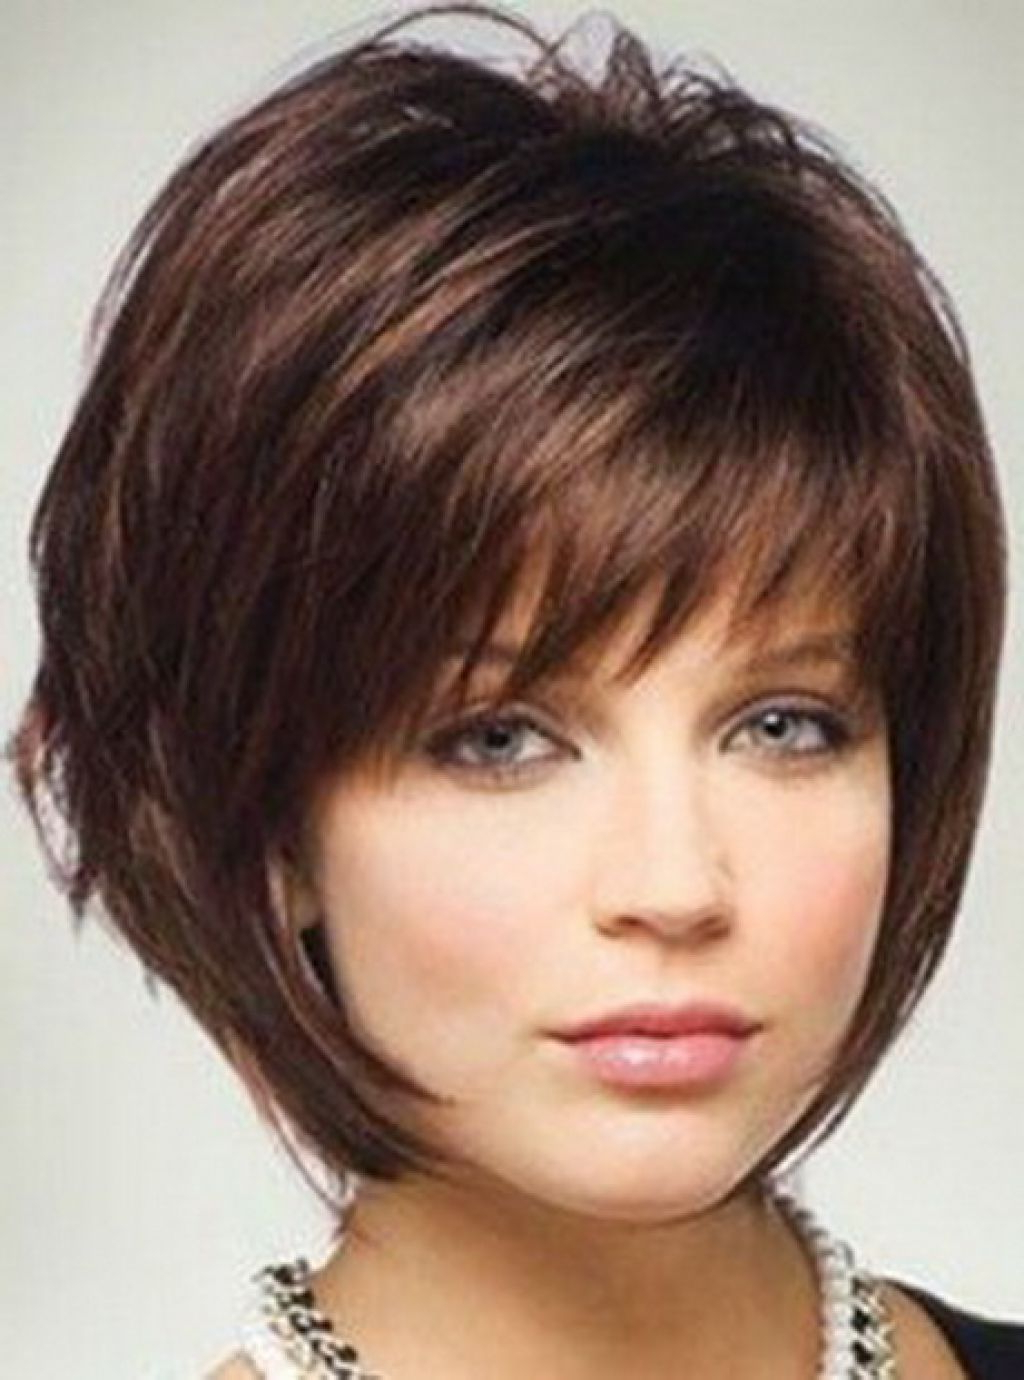 Short Choppy Hairstyles With Bangs – Hairstyle For Women & Man Throughout Choppy Short Hairstyles For Older Women (View 19 of 25)